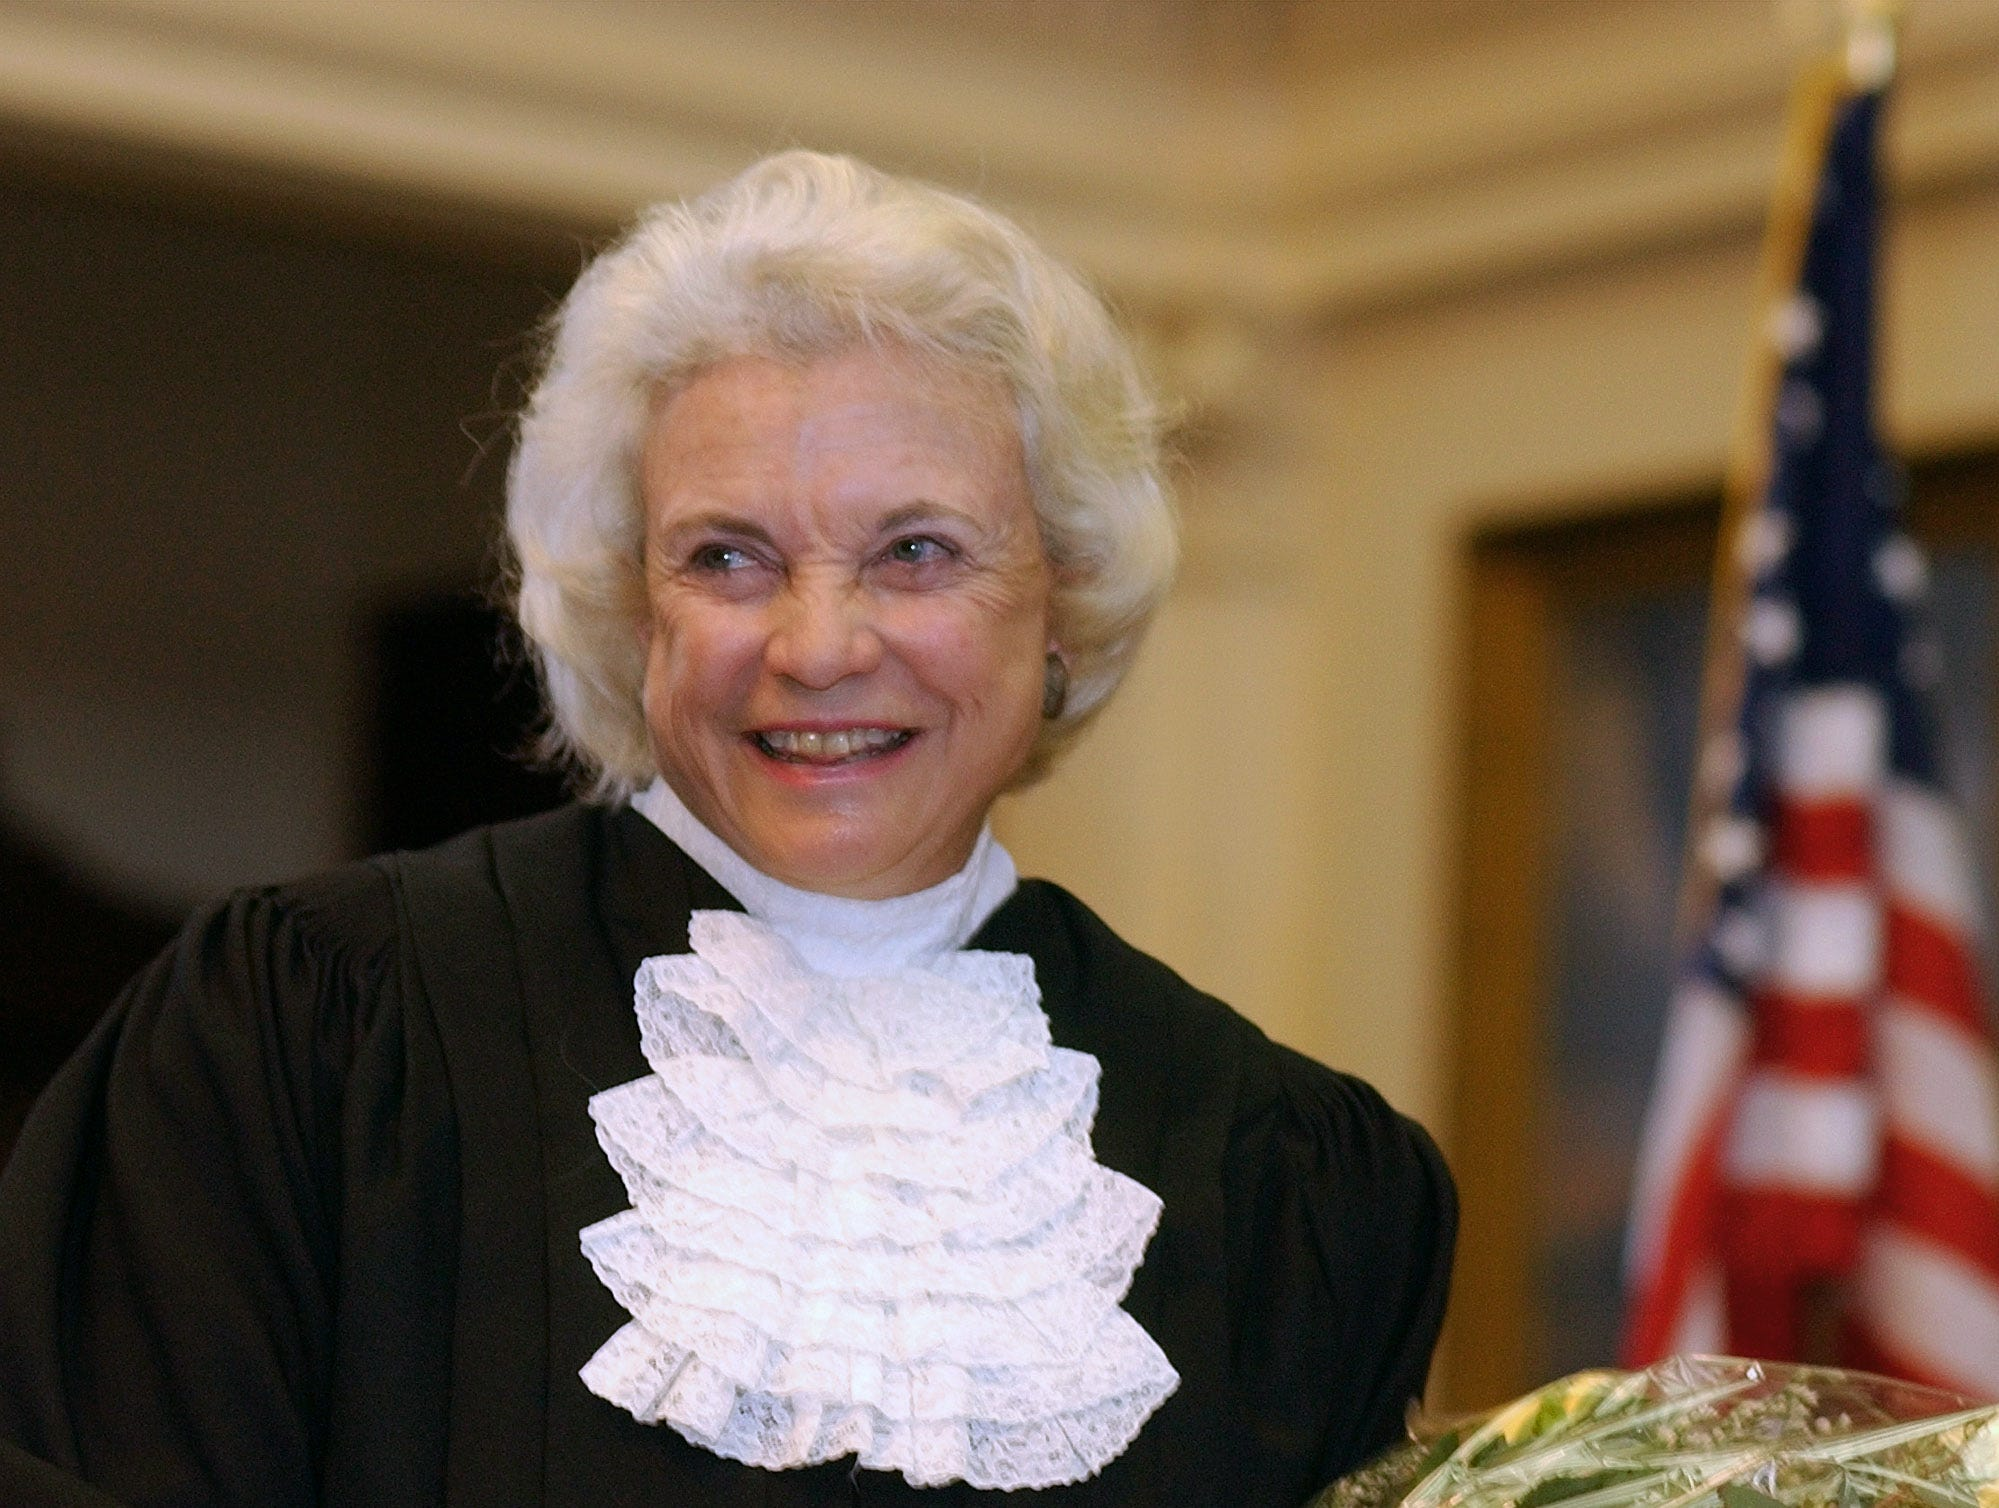 U.S. Supreme Court Justice Sandra Day O'Connor is shown before administering the oath of office to members of the Texas Supreme Court, Monday, Jan. 6, 2003, in Austin, Texas.